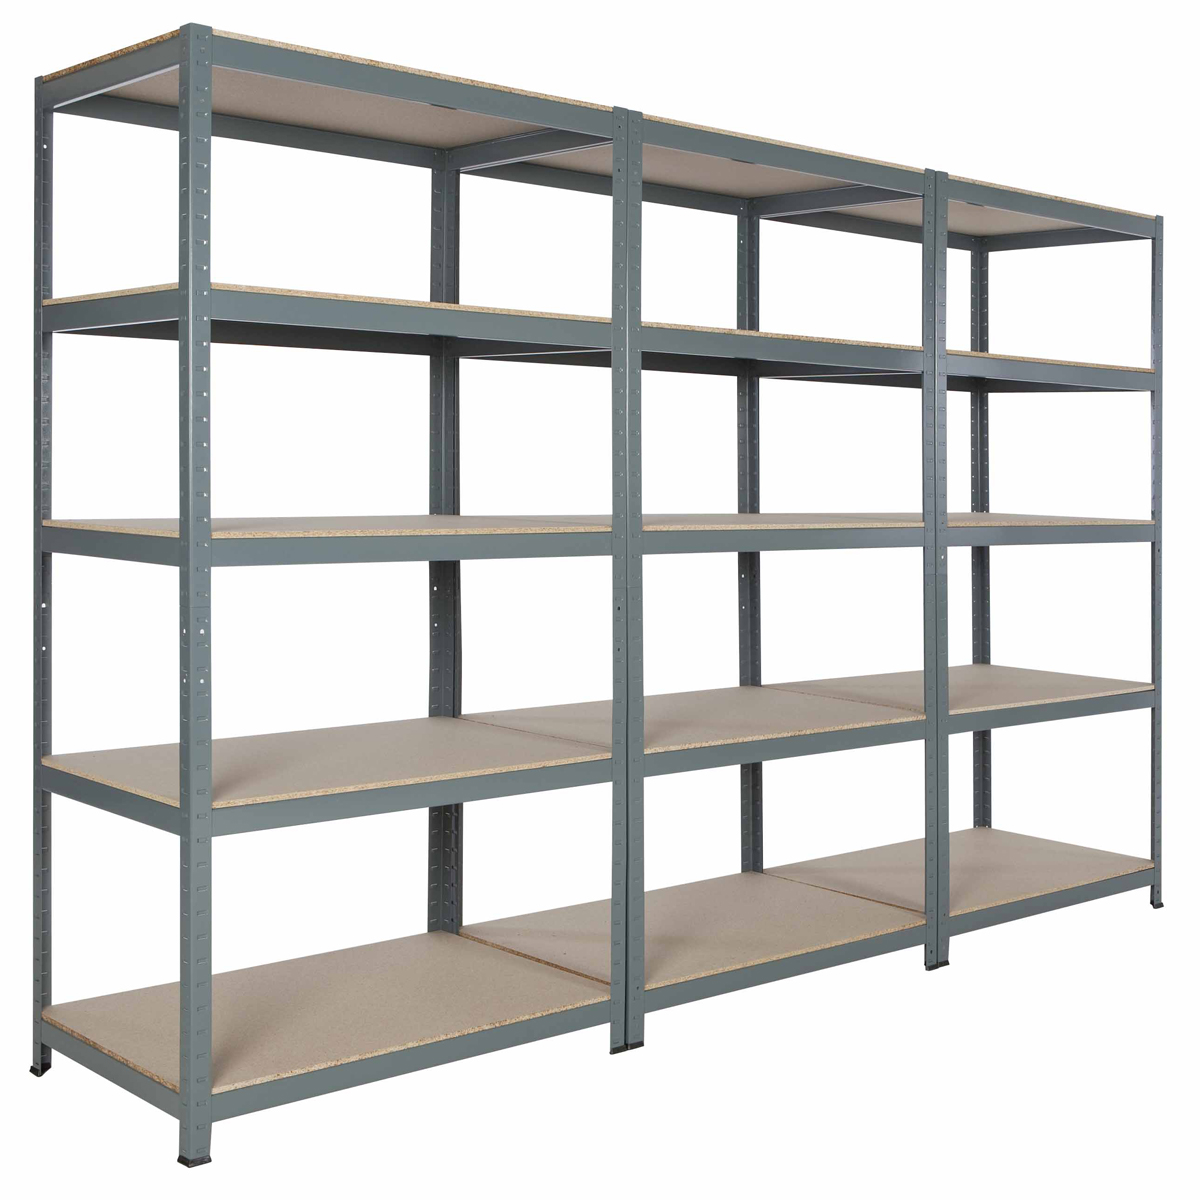 what is the best garage shelving